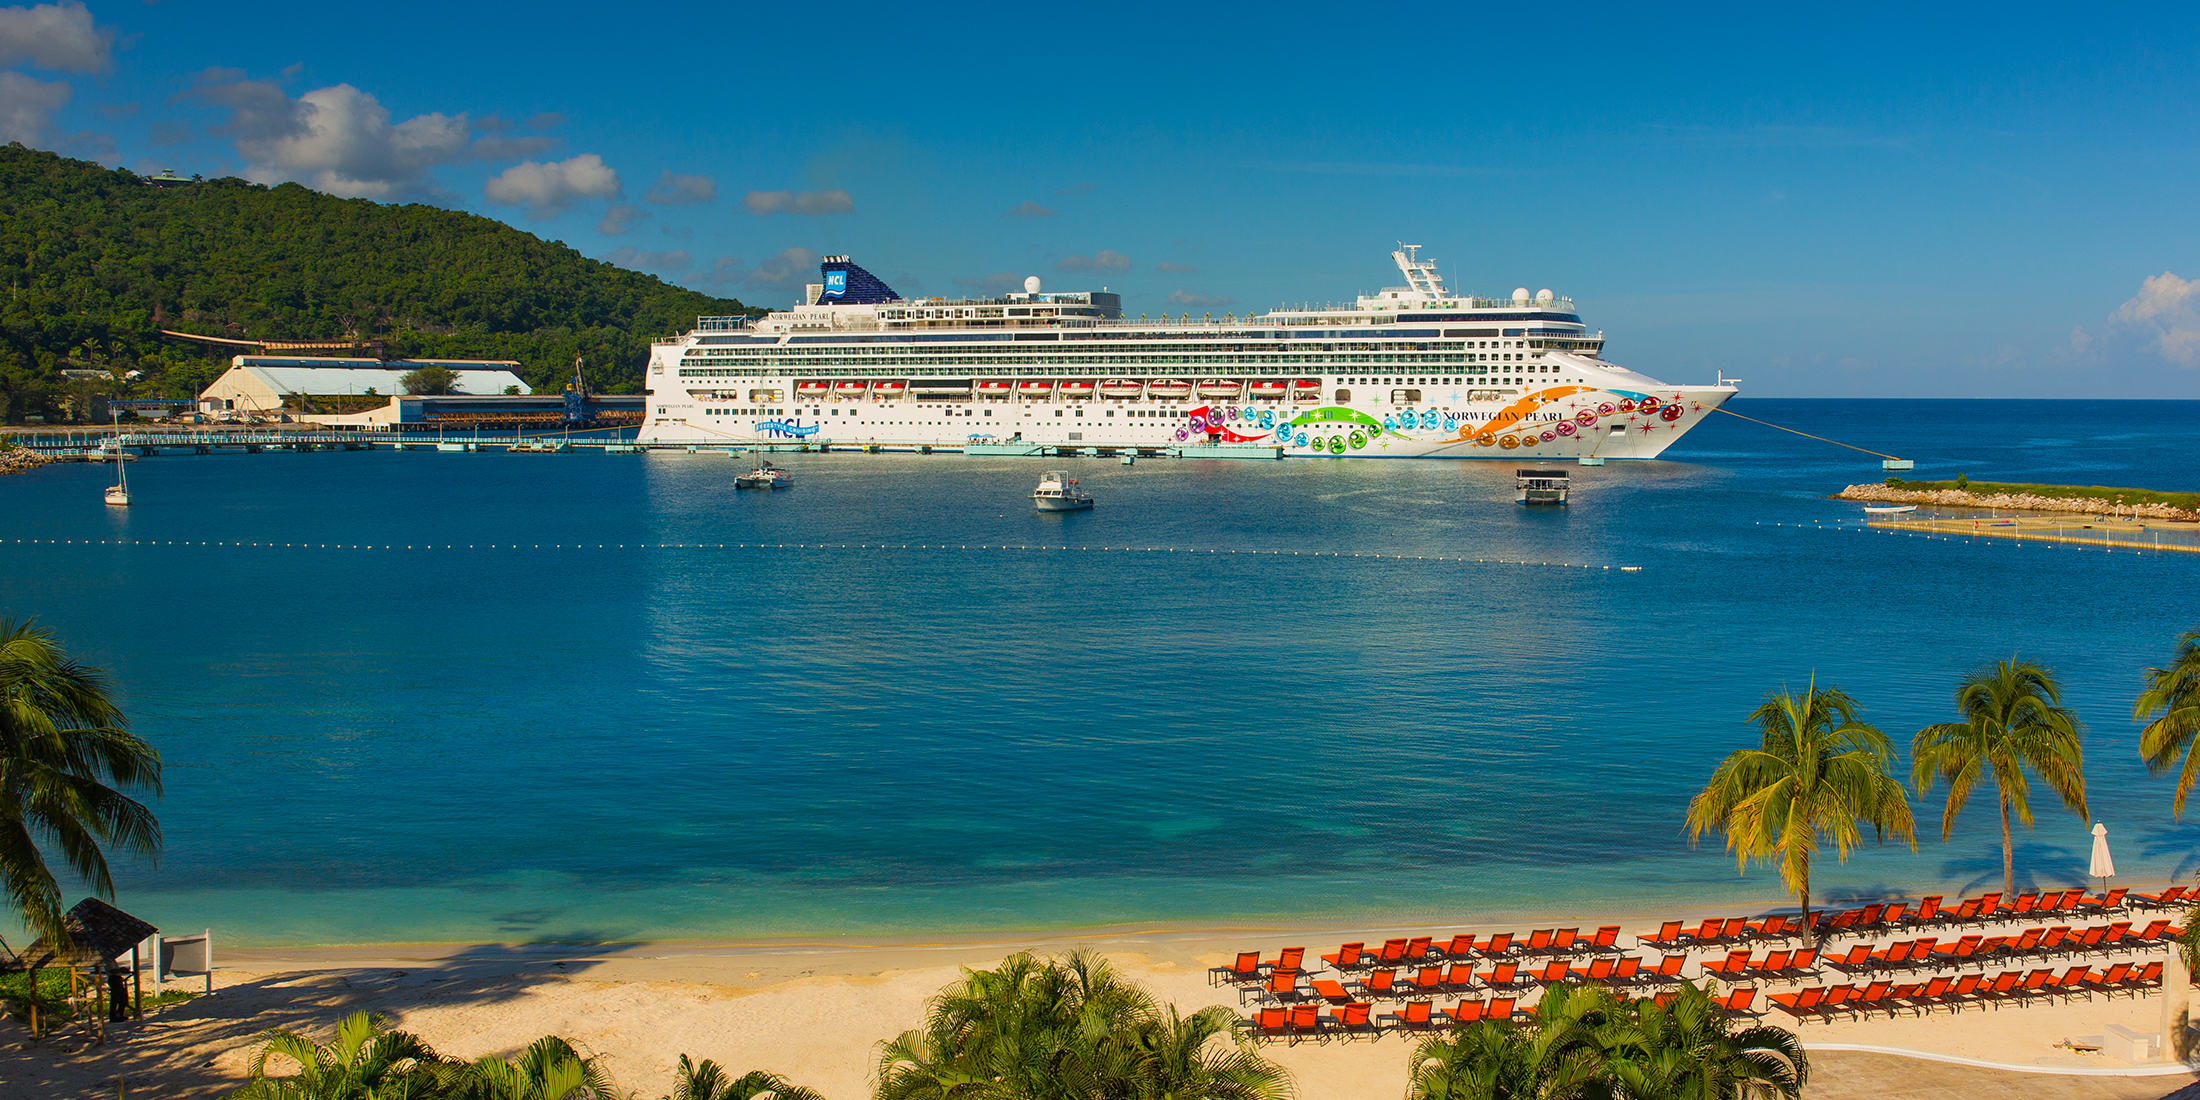 Cruise The Panama Canal With Norwegian Cruise Line!